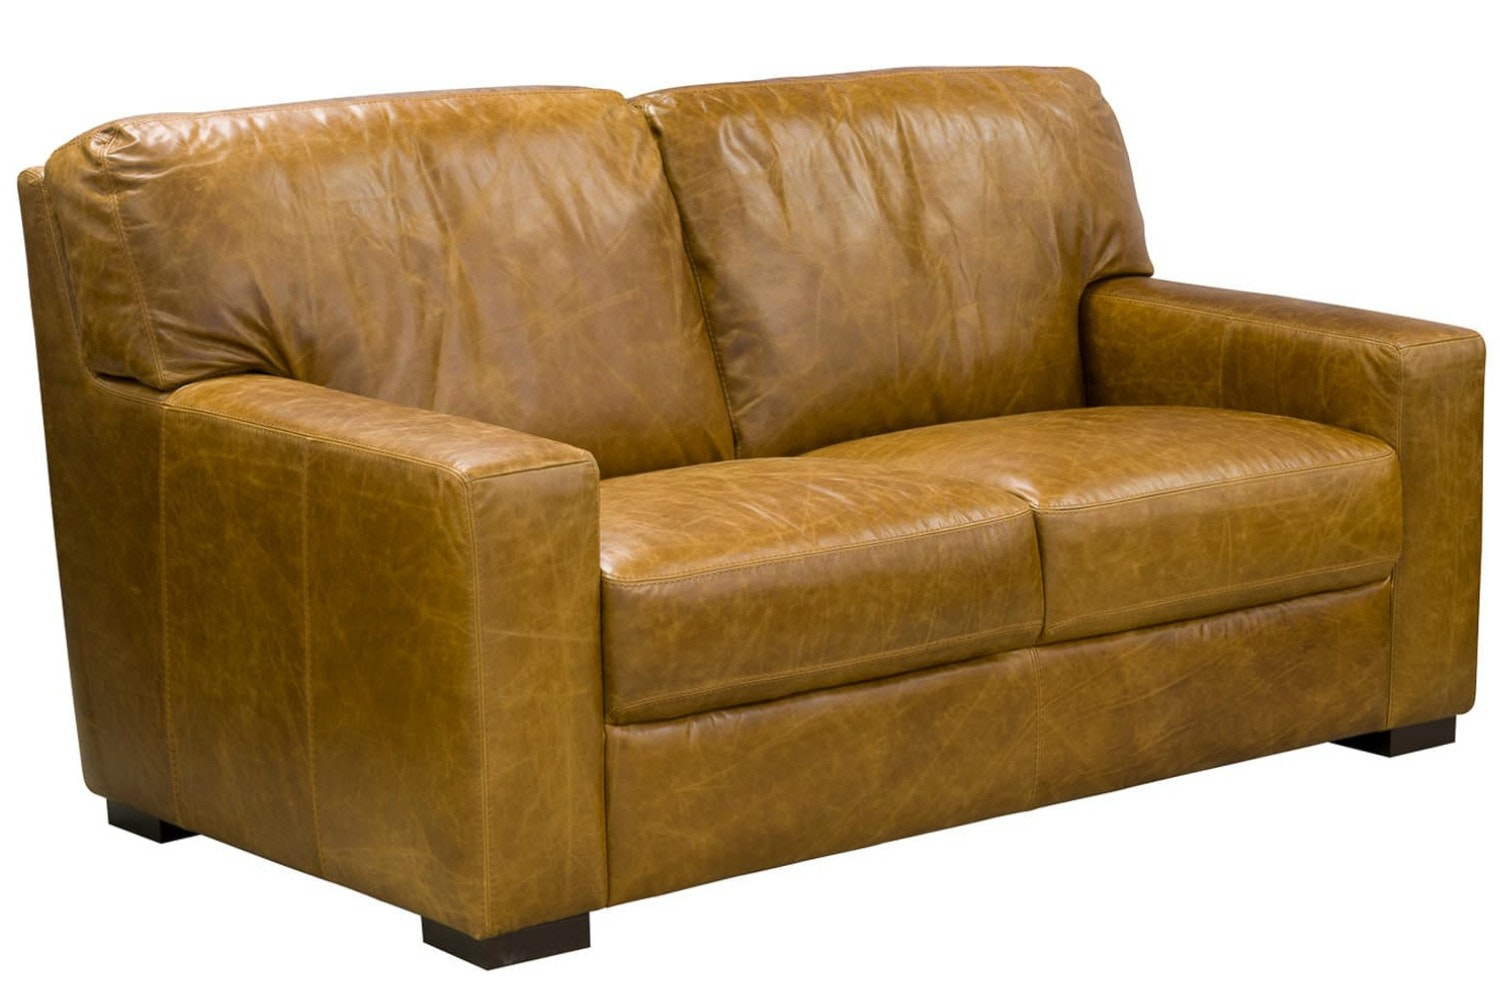 Bedford 2 Seater Sofa